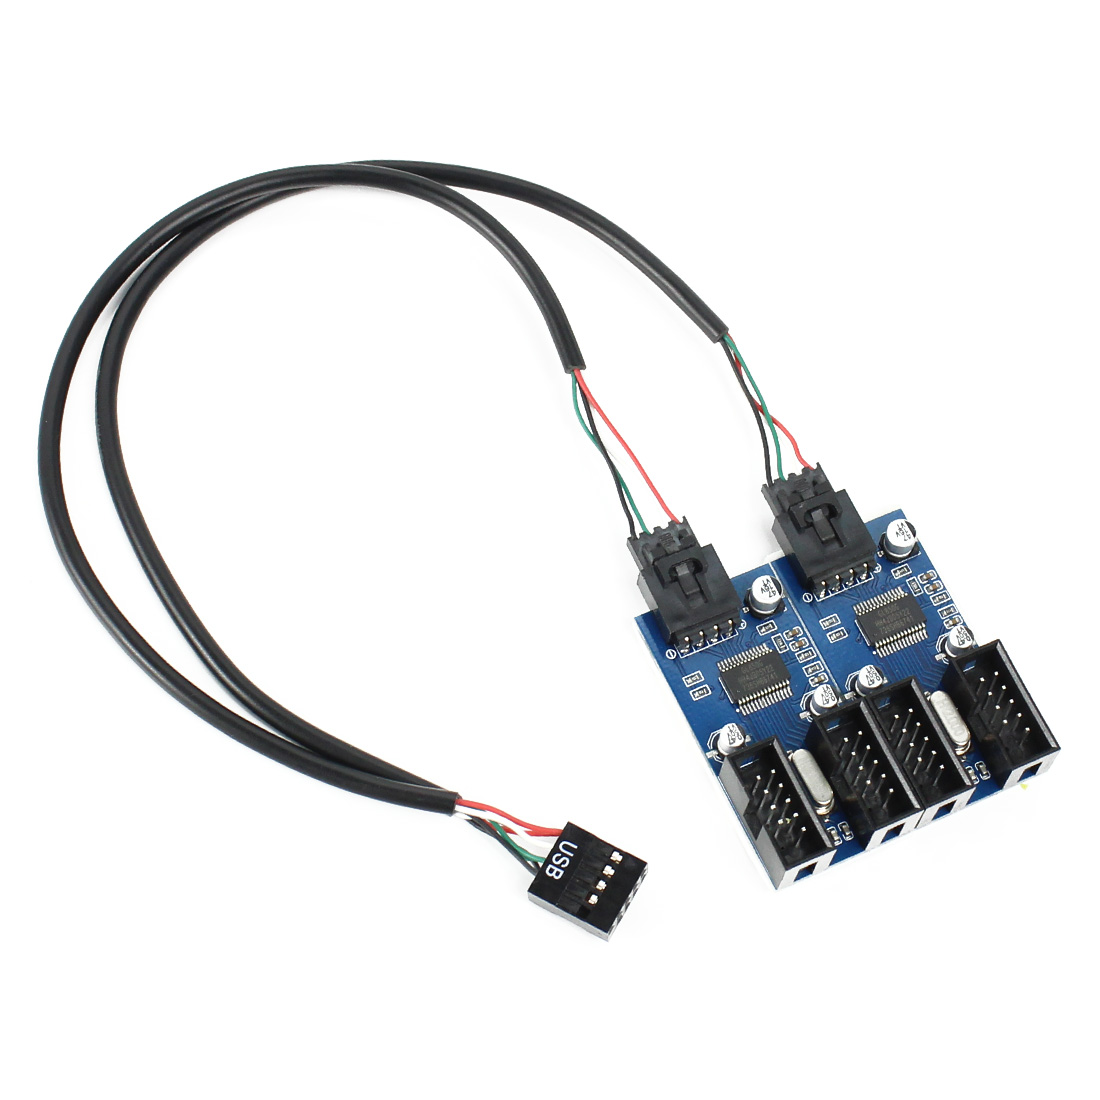 9pin <font><b>USB</b></font> header Male 1 to 2 / 4 Female Extension Cable Card Desktop <font><b>9</b></font>-<font><b>Pin</b></font> <font><b>USB</b></font> HUB <font><b>USB</b></font> <font><b>2.0</b></font> <font><b>9</b></font> <font><b>pin</b></font> Connector Adapter Port Multilier image